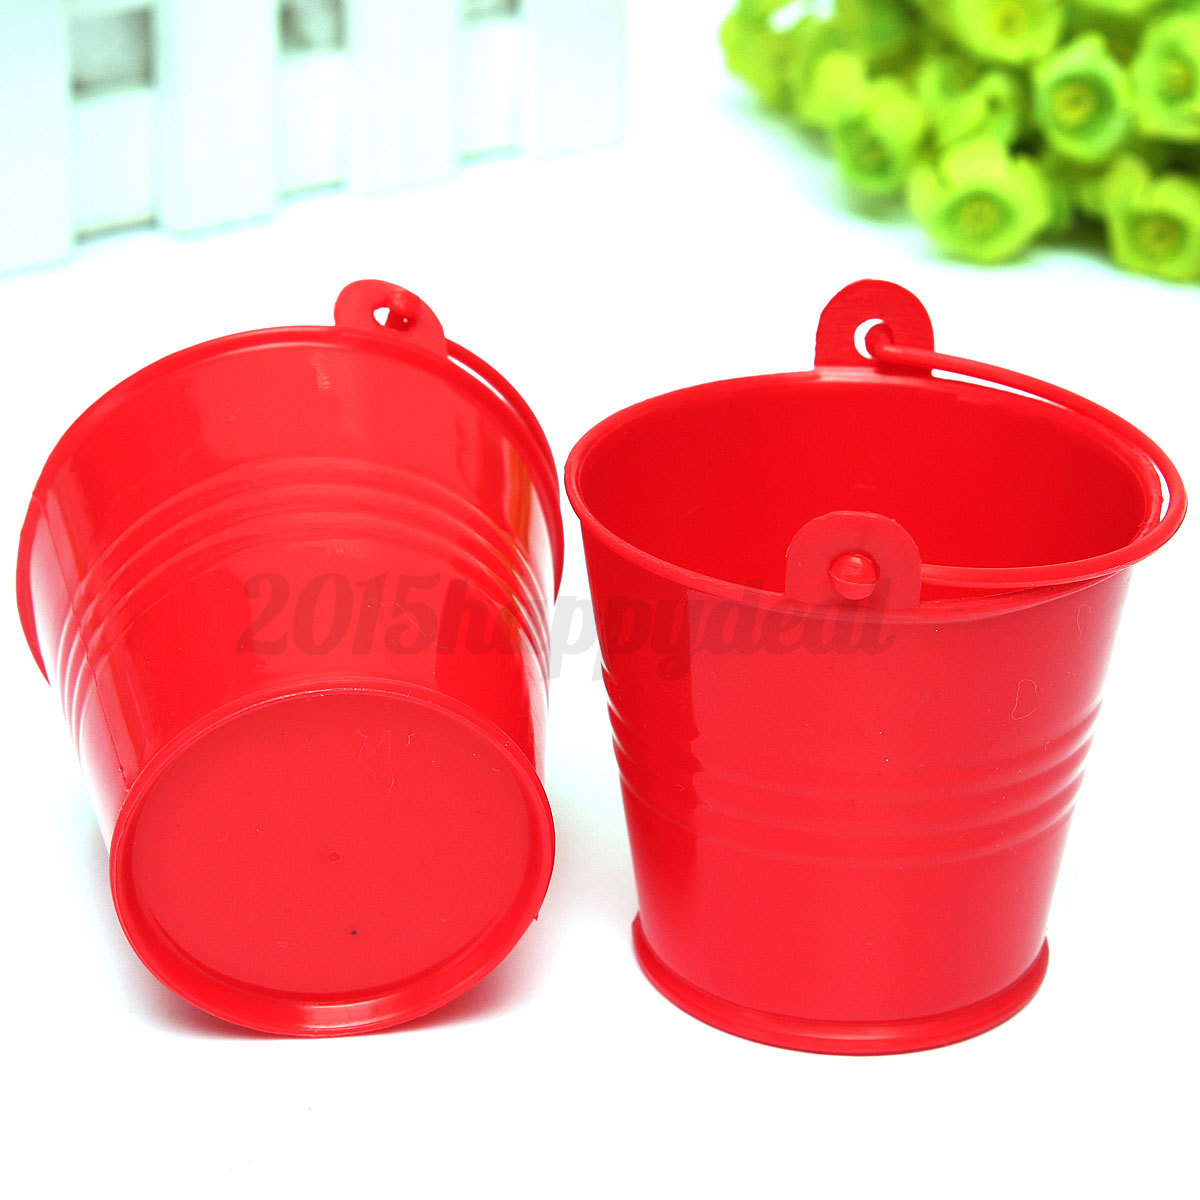 10pcs mini buckets candy favours pails buckets wedding for Small pail buckets